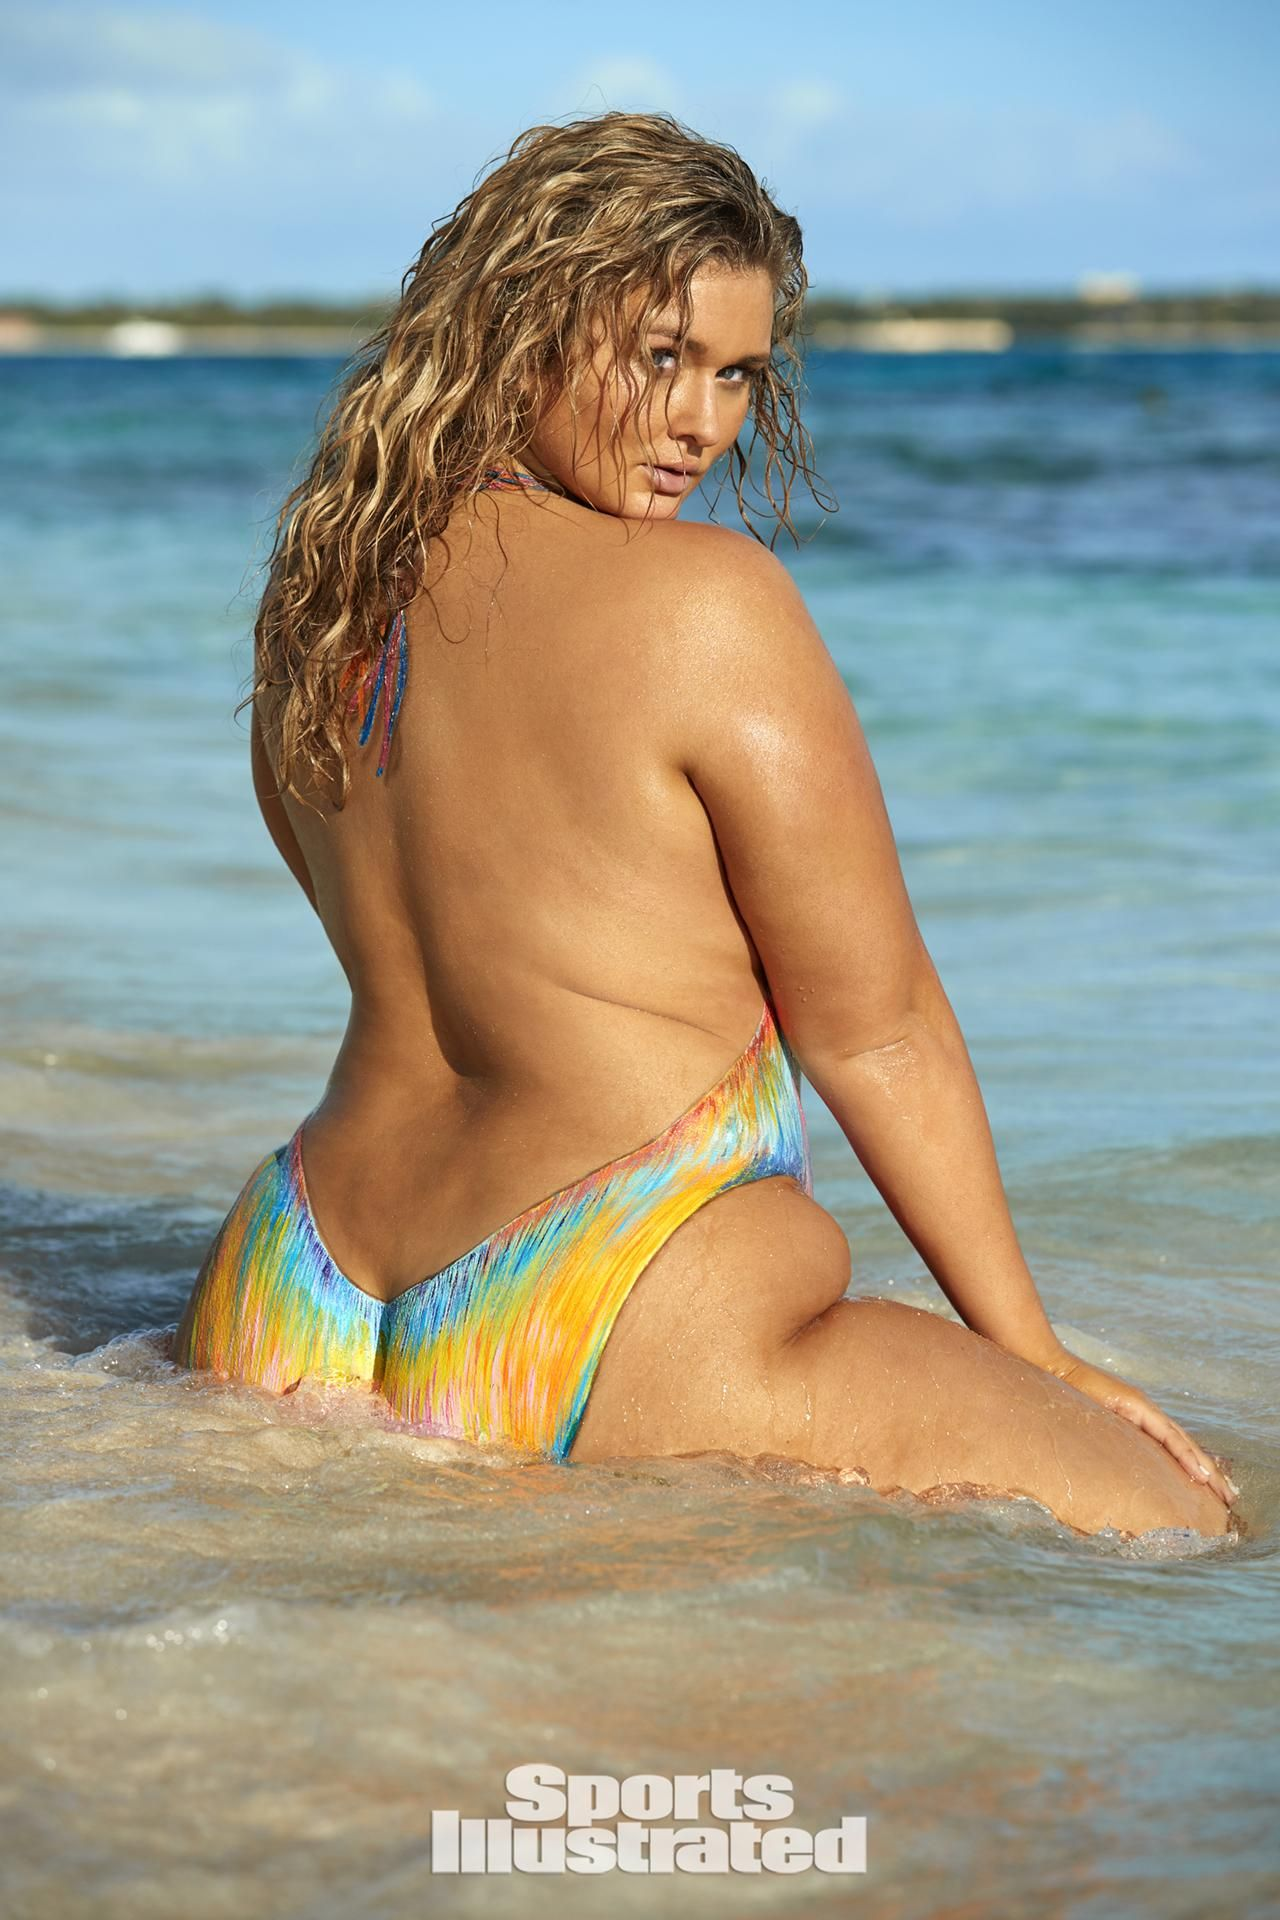 Opinion you Plus size sports illustrated swimsuit model consider, that